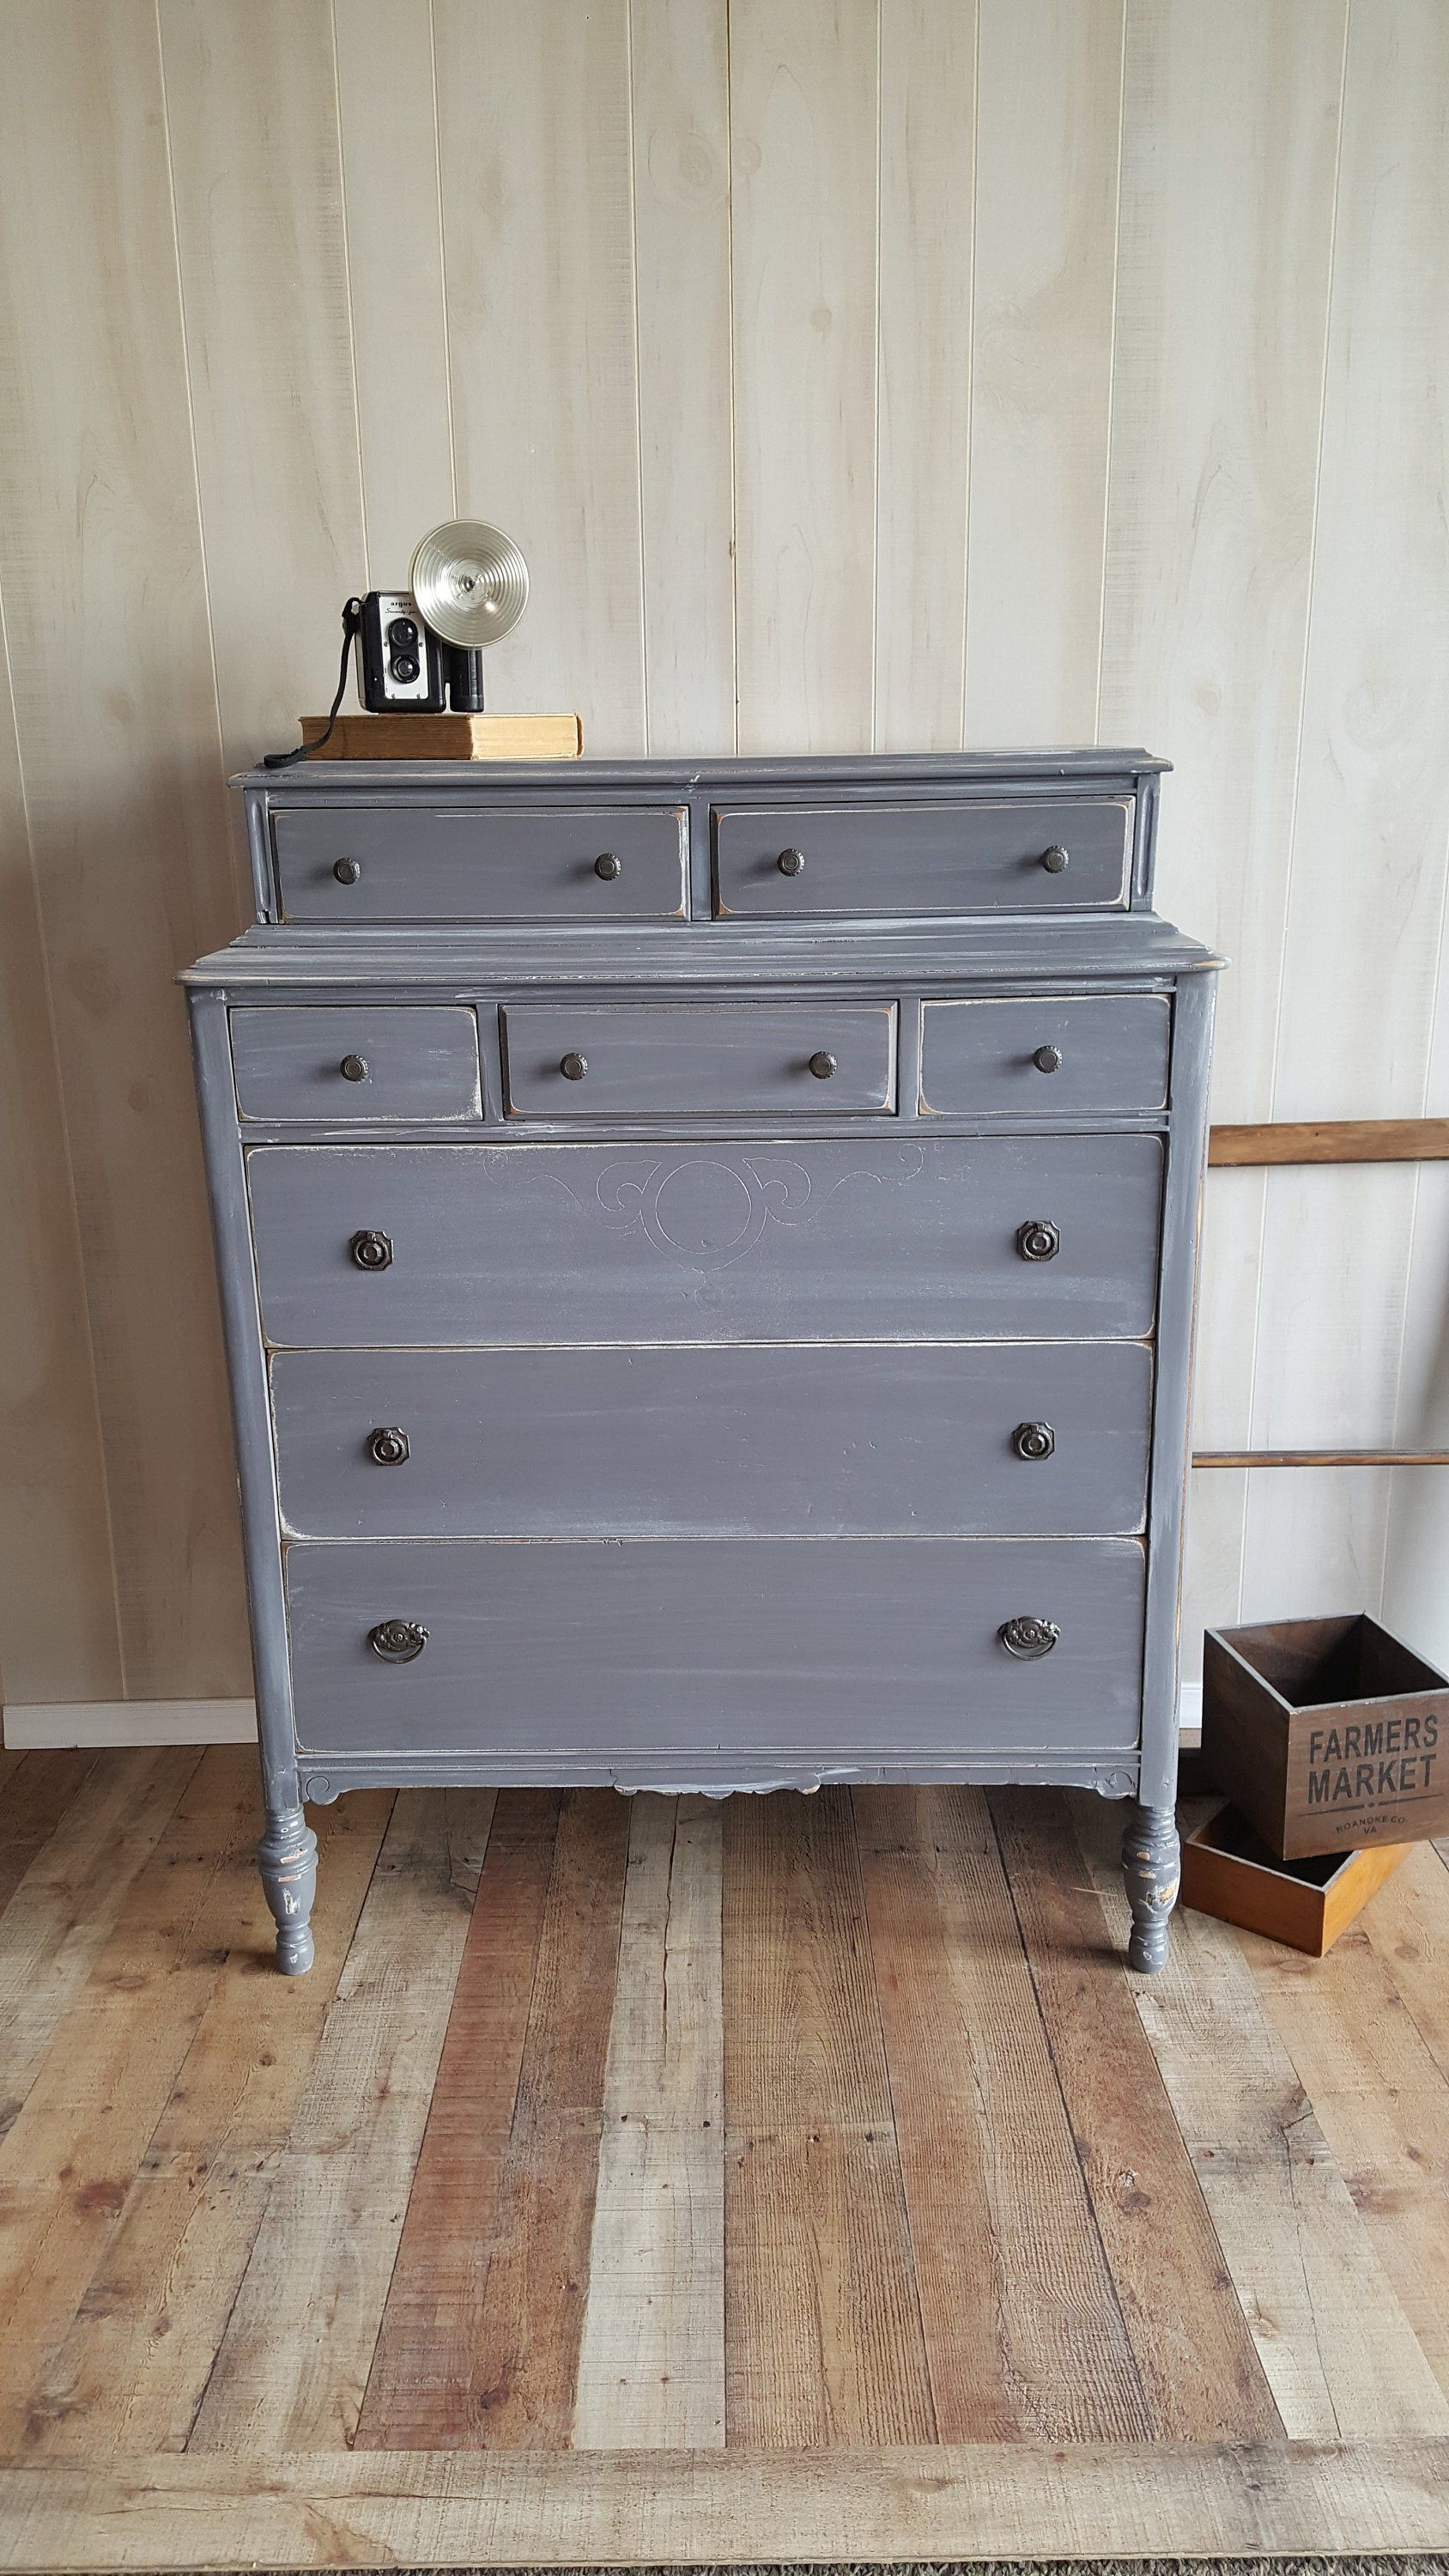 Vintage French Dresser Chest This Dresser Measures 38 Wide 20 Deep And 49 5 Tall This Dresser Has Vintage Painted Furniture Vintage Shabby Chic Shabby Chic